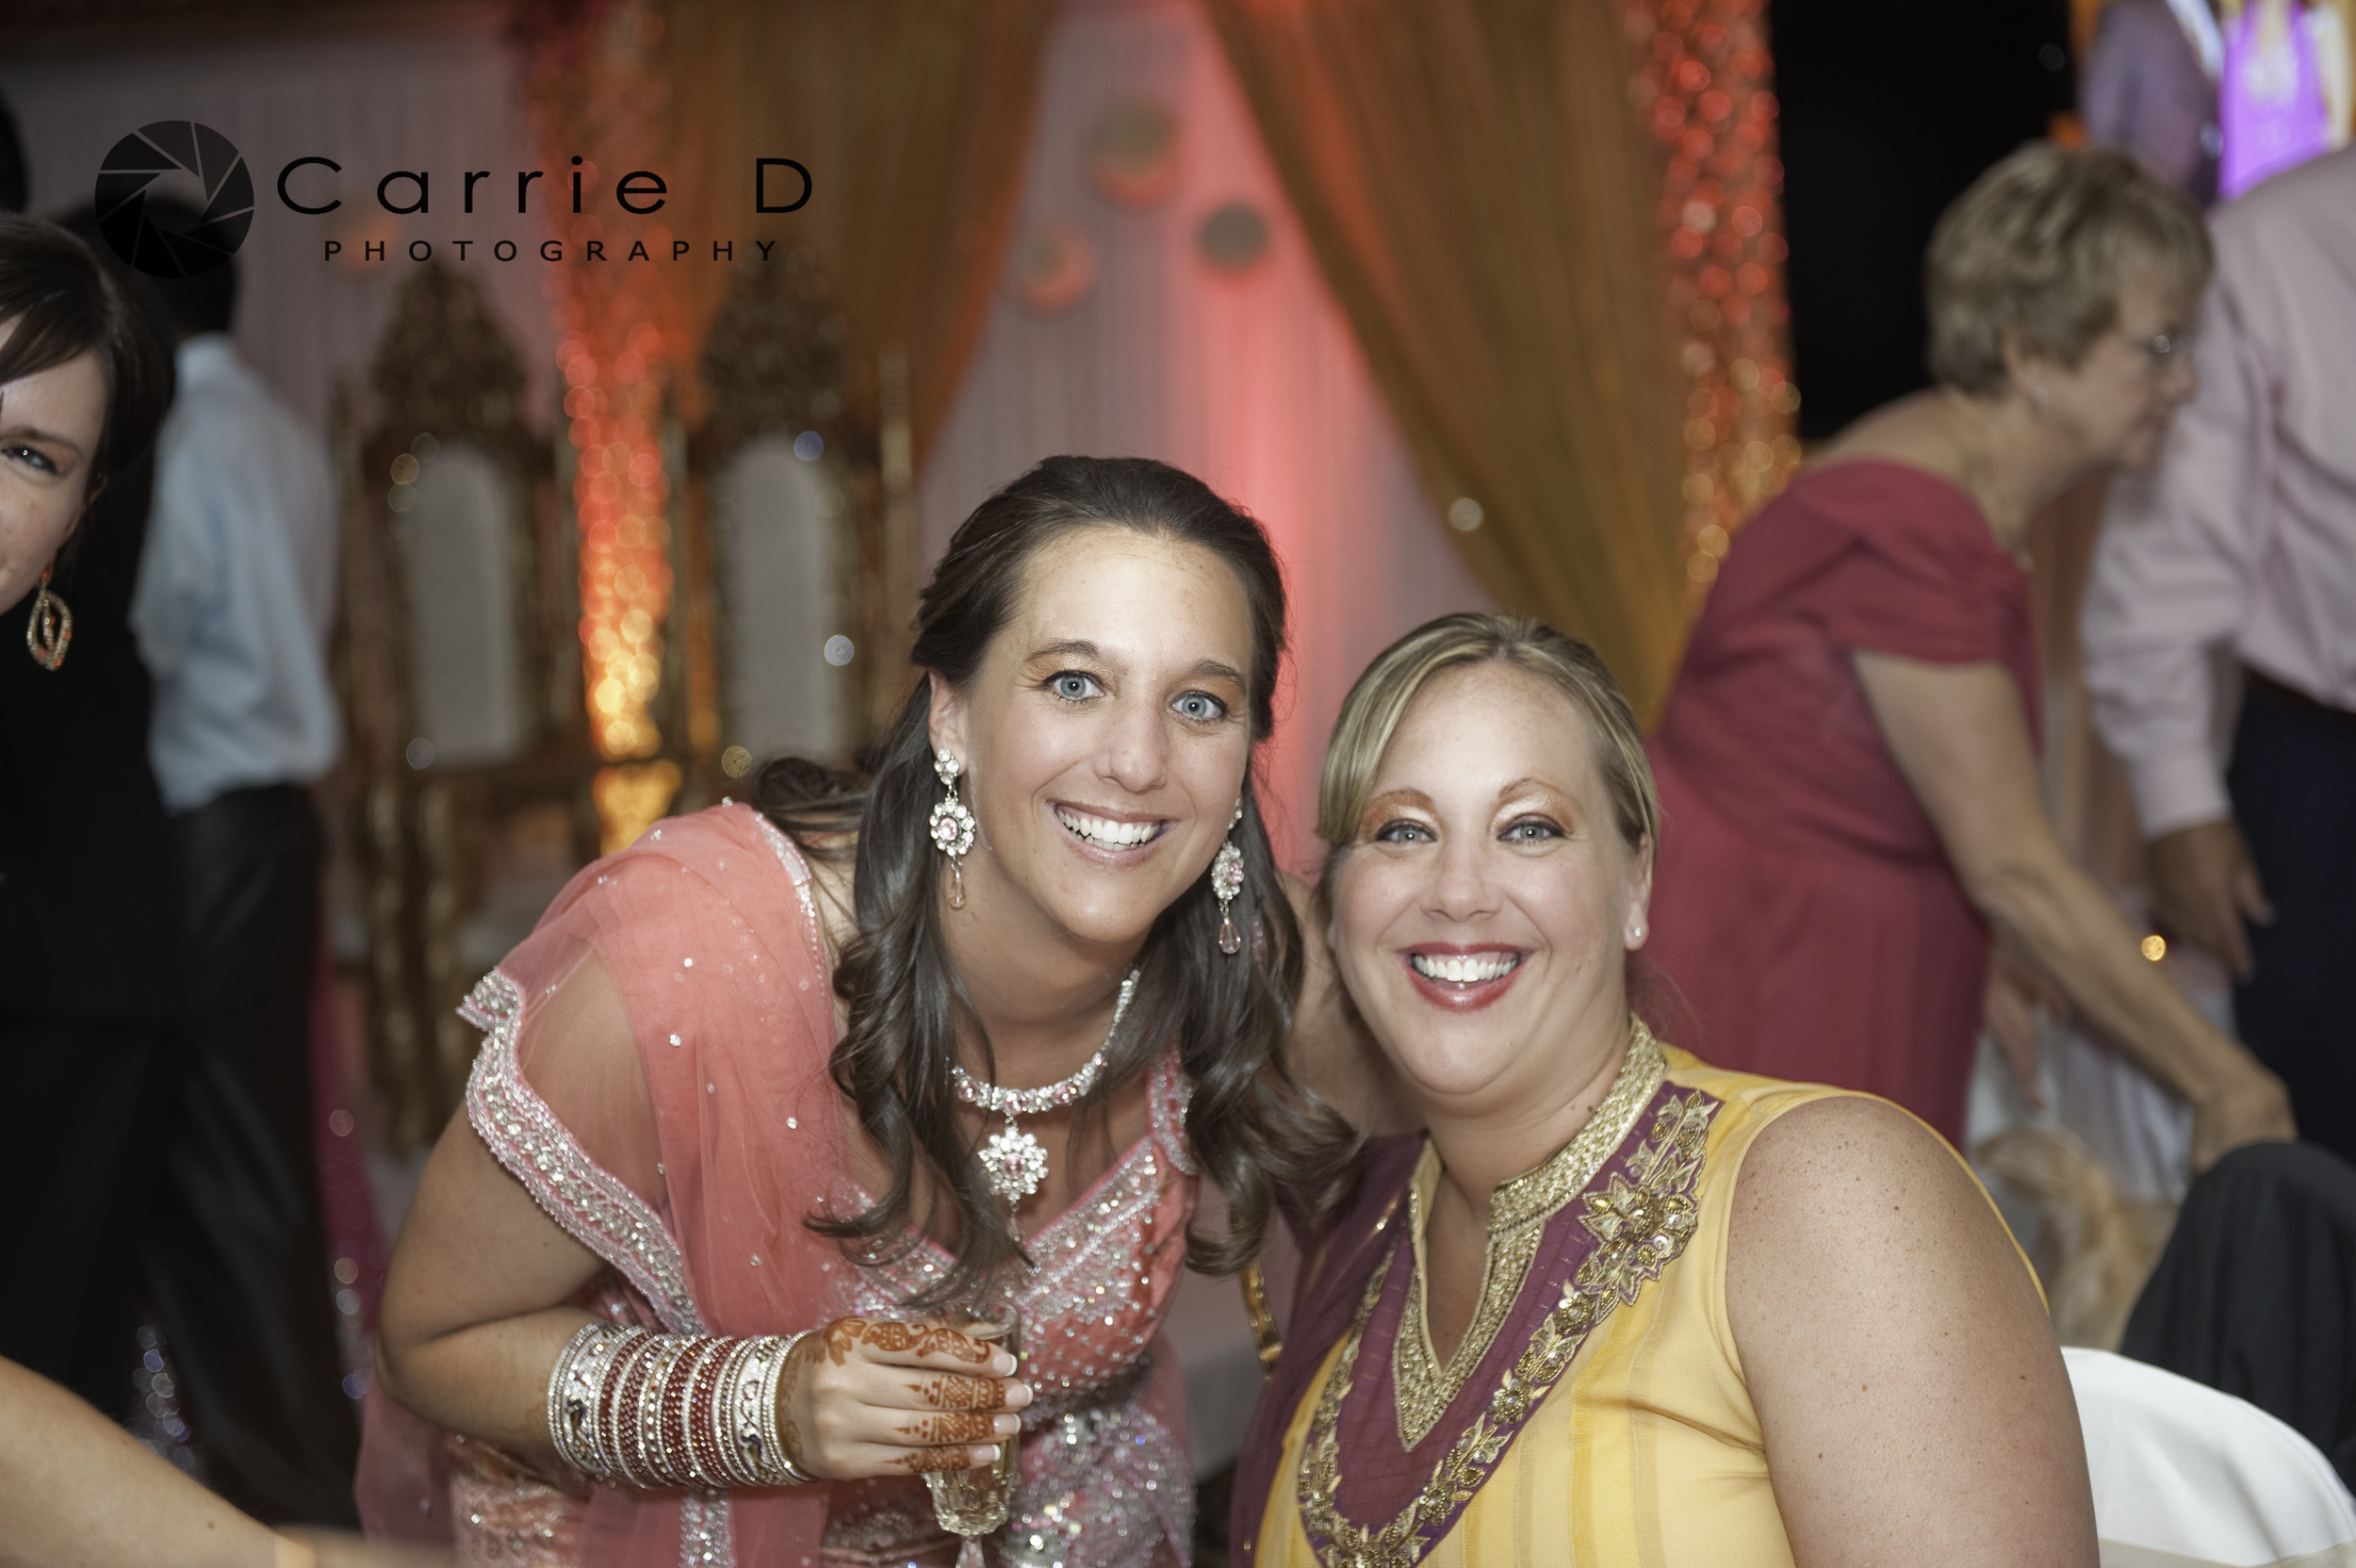 New Jersey Wedding Photographer - New Jersey Indian Wedding Photographer - New Jersey Lifestyle Wedding Photographer - Maryland Wedding Photographer - Maryland Natural Light Wedding Photographer - Maryland Indian Wedding Photographer - Maryland Wedding Photography